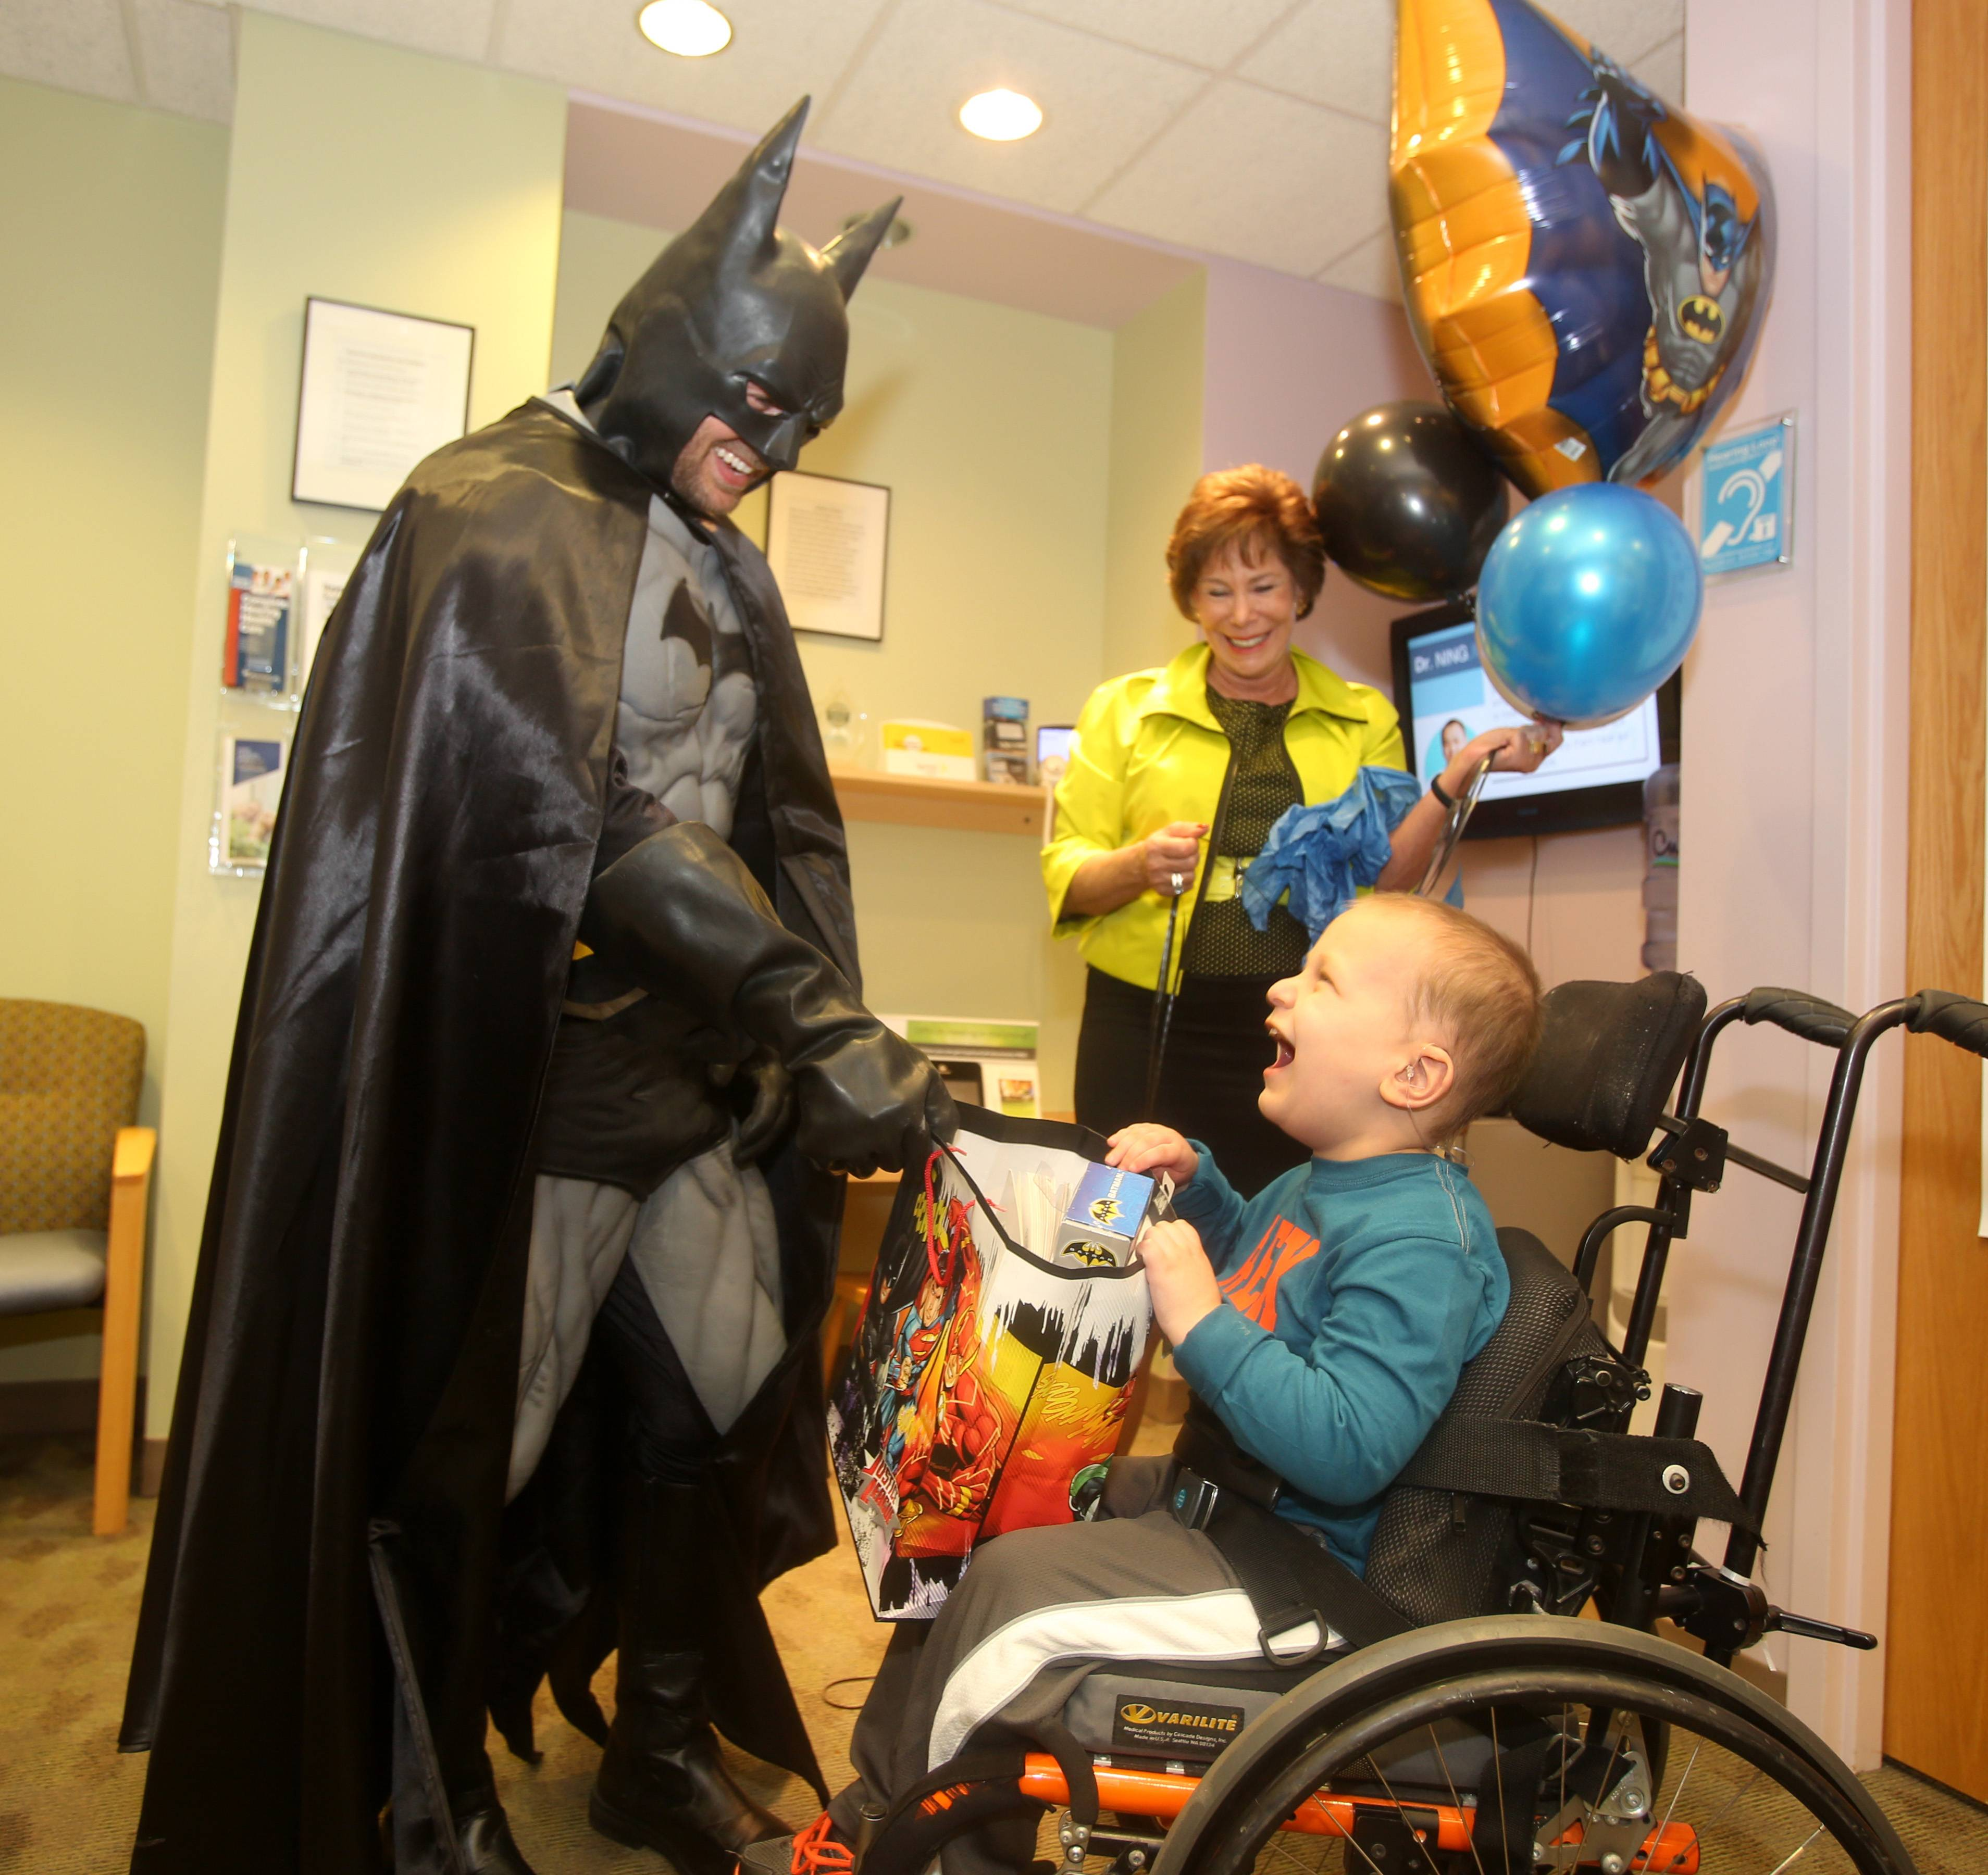 Riley Buckolz, 6, who has several tumors in his brain and spine, not only received free hearing aids at the Hearing Health Center in Naperville, but also got a visit from his favorite superhero, Batman. Dr. Ronna Fisher holds balloons for the occasion.